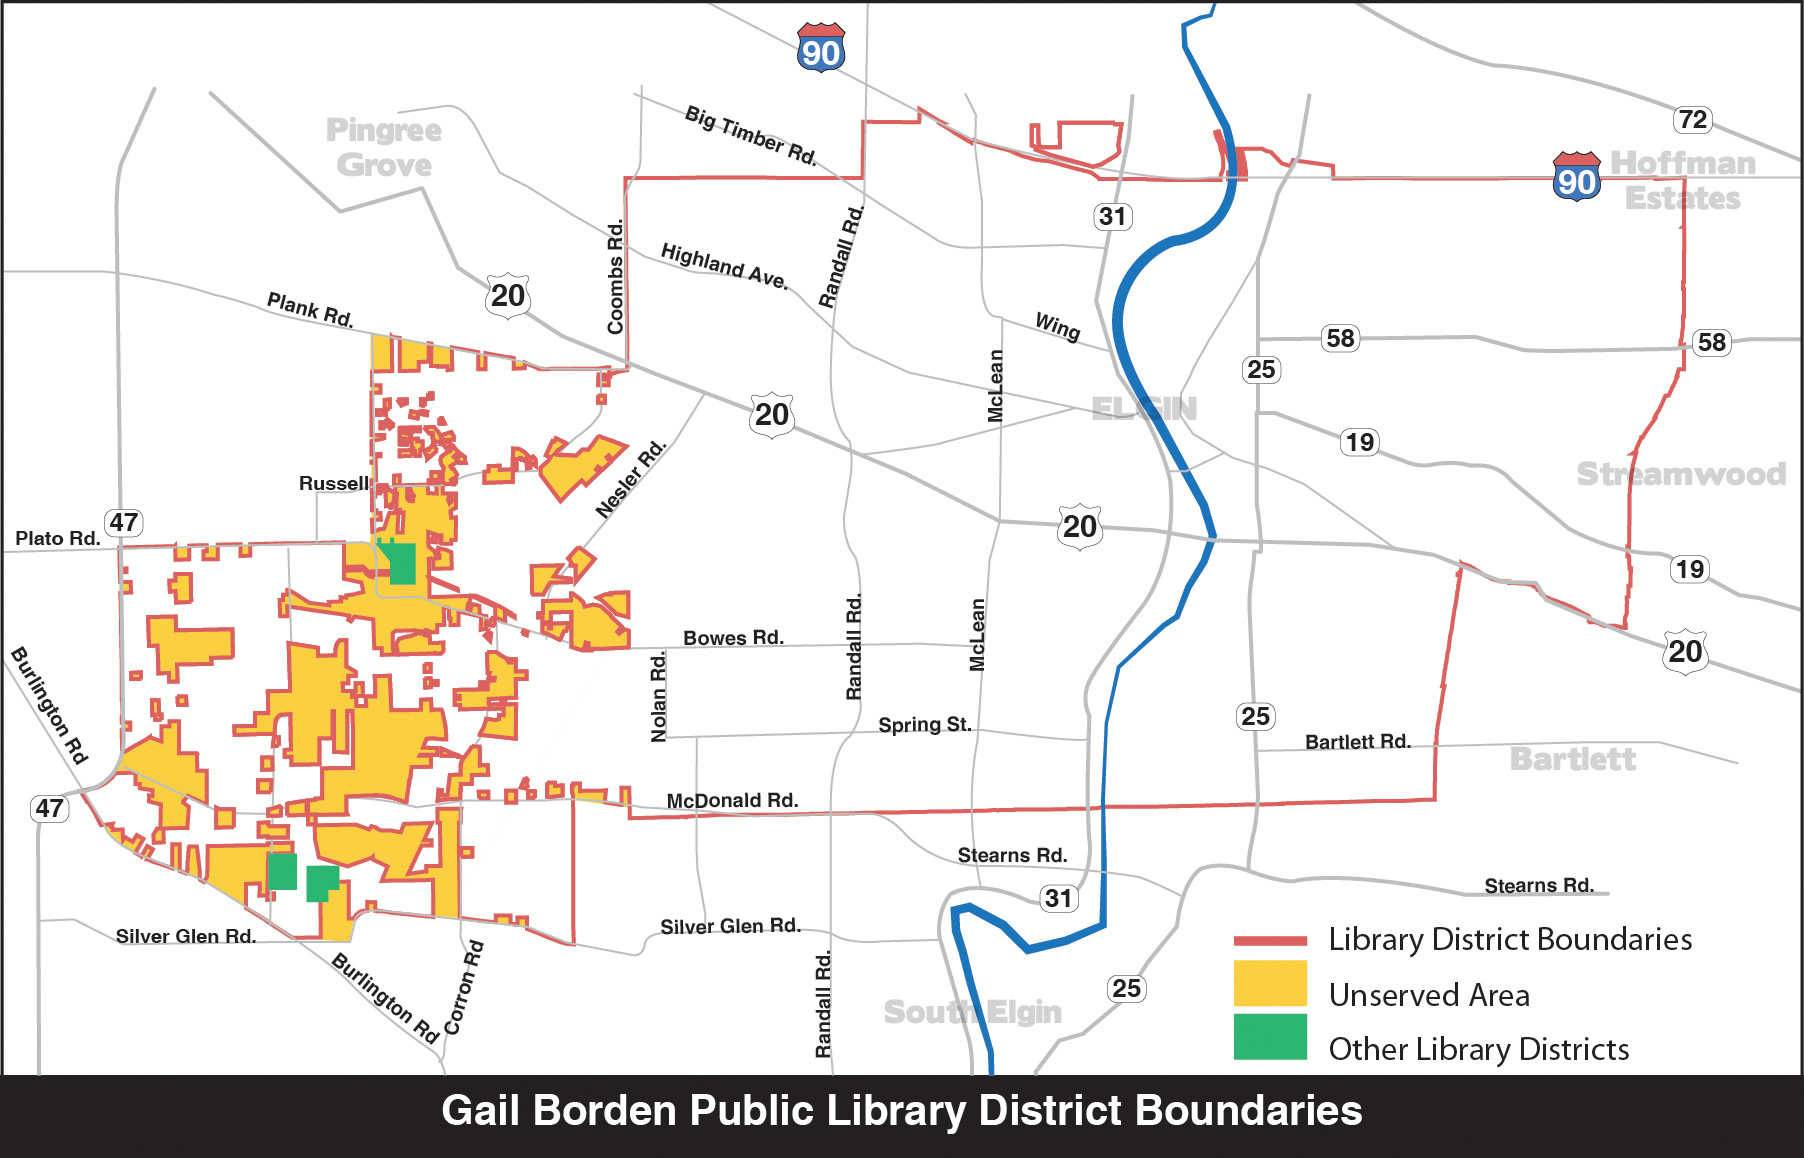 Voters in unserved areas next to the western edge of the Gail Borden Public Library District, along with all voters in the district, likely will be asked in November to decide whether those unserved areas should be annexed to the district. Those areas include an estimated 870 households.